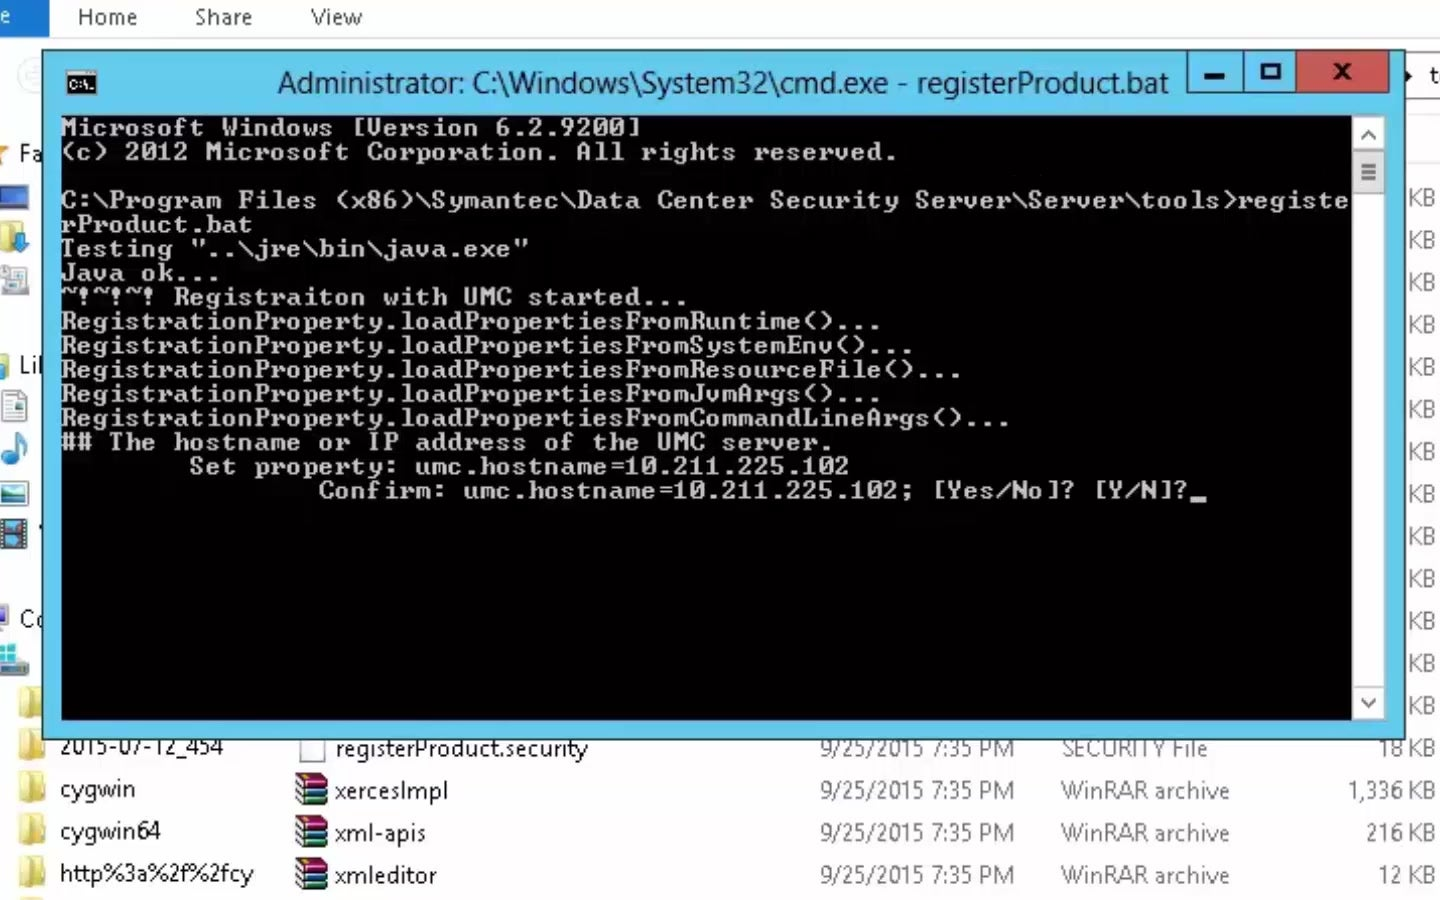 Video Registering The Management Server With Unified Management Console - File Server Java Program